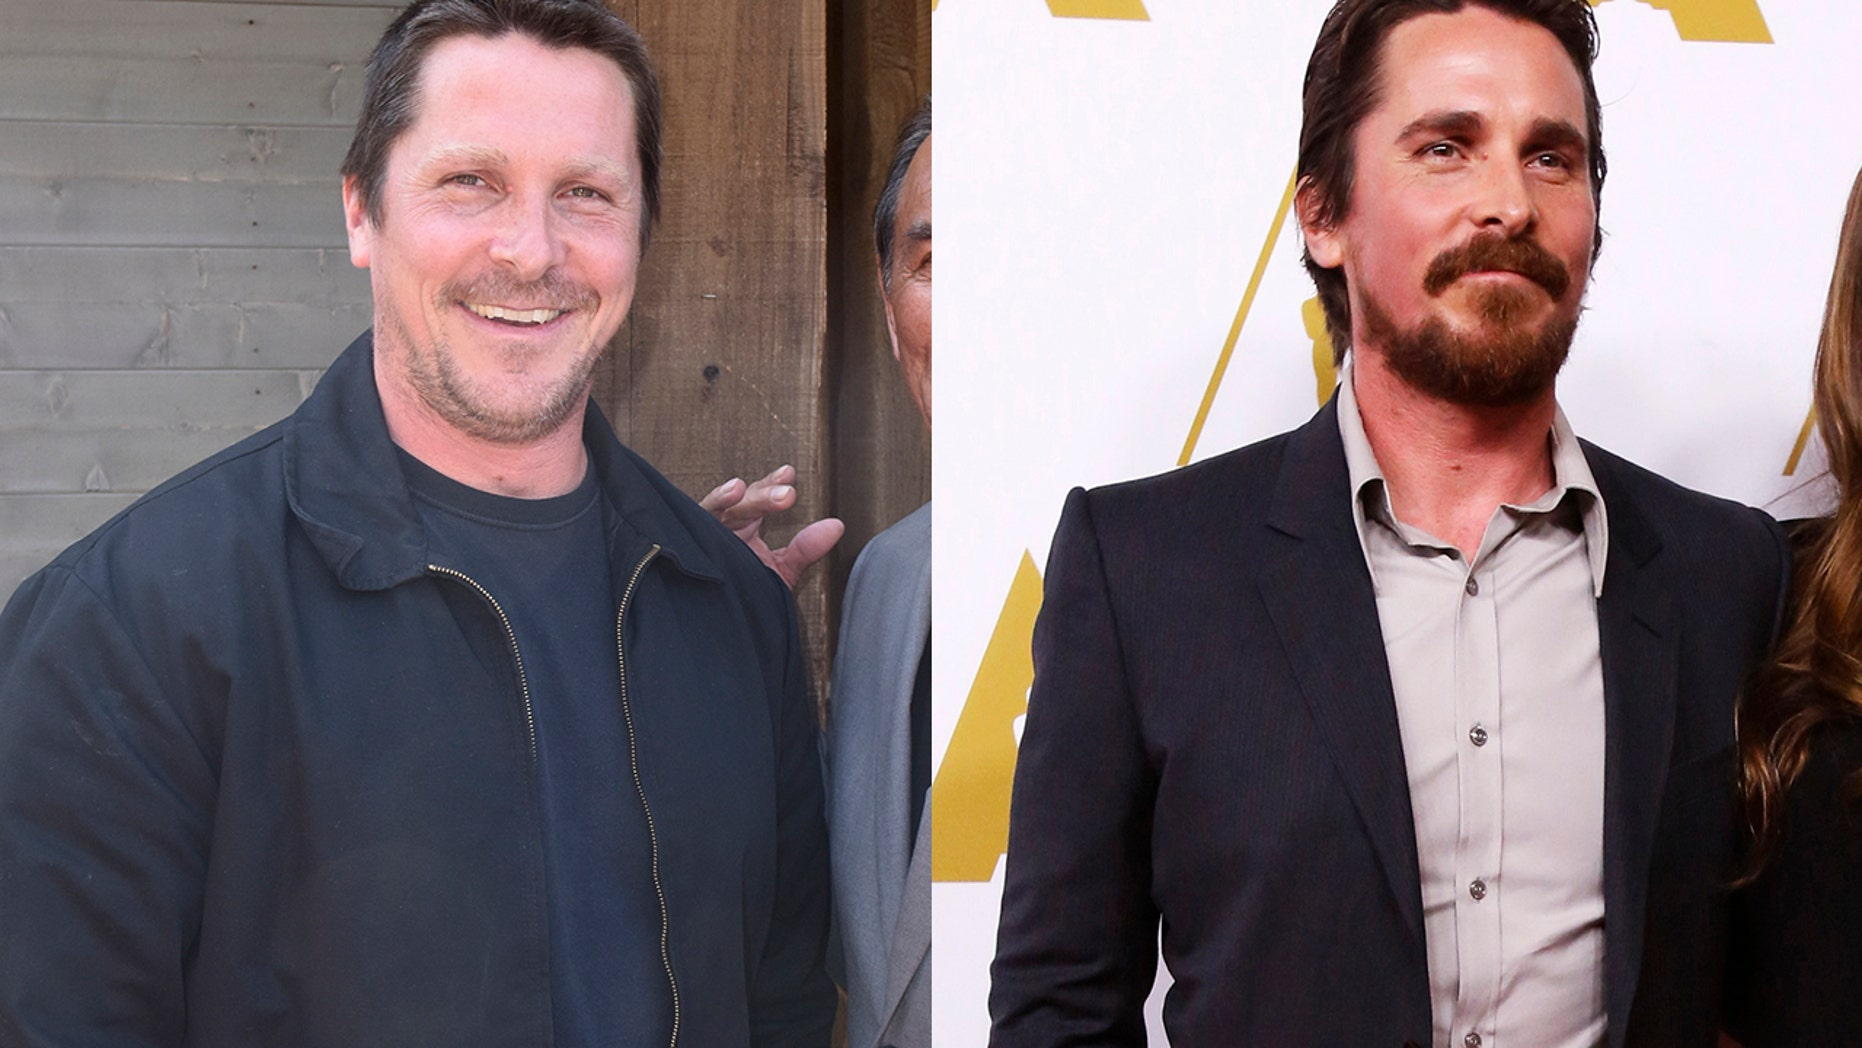 """Christian Bale packed on the pounds to play former Vice President Dick Cheney in the upcoming film """"Backseat."""" The actor looks very different (left) than his typically fit physique (right). <a href=""""http://www.etonline.com/slideshow/gallery/126866_Actors_Body_Transformations_For_Roles/50024"""" target=""""_blank"""">Click here for more celebrity transformation pics.</a>"""